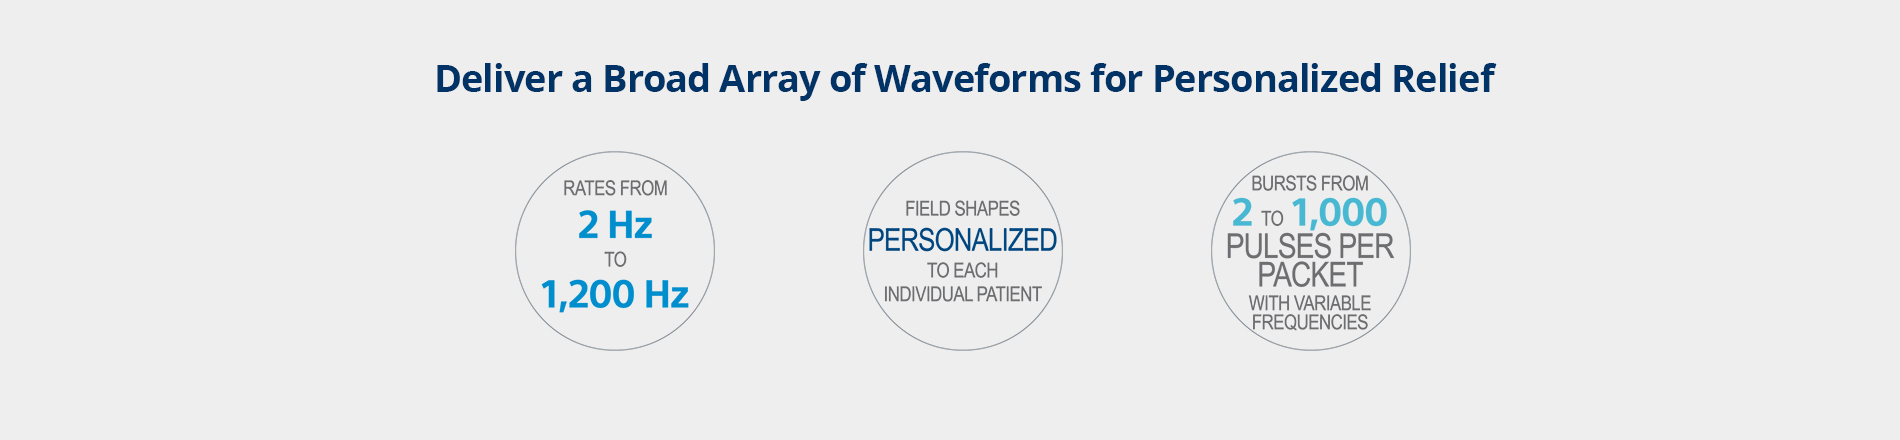 Deliver a Broad Array of Waveforms for Personalized Relief